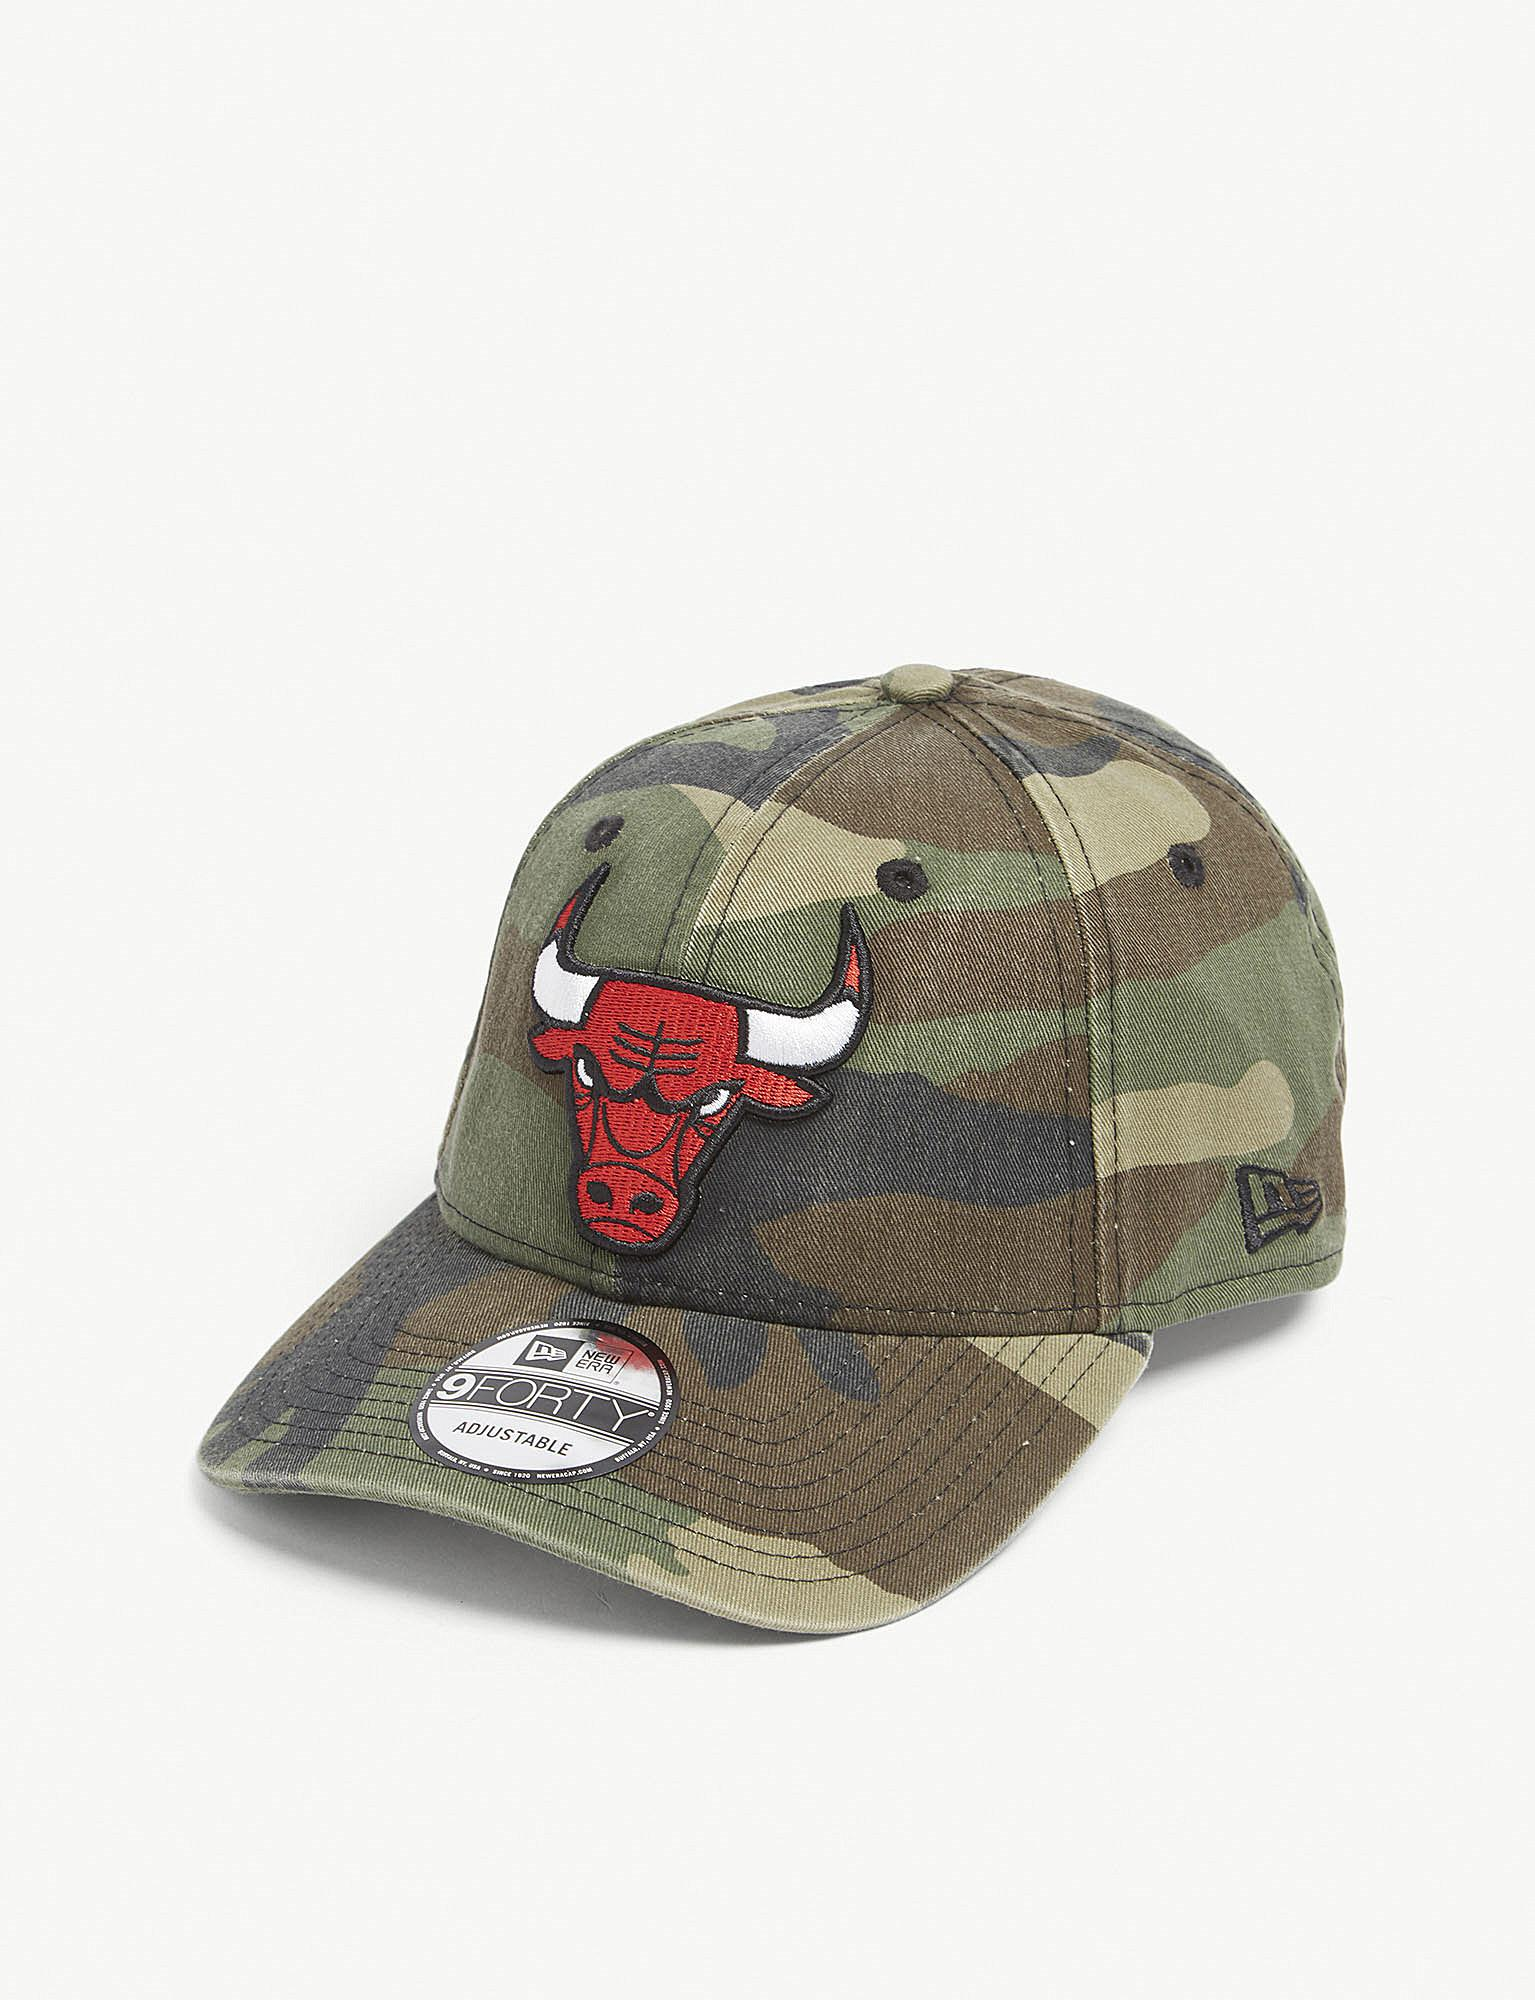 KTZ. Men s Green 9forty Chicago Bulls Washed Camouflage Cotton Strapback Cap c28e3e588cac